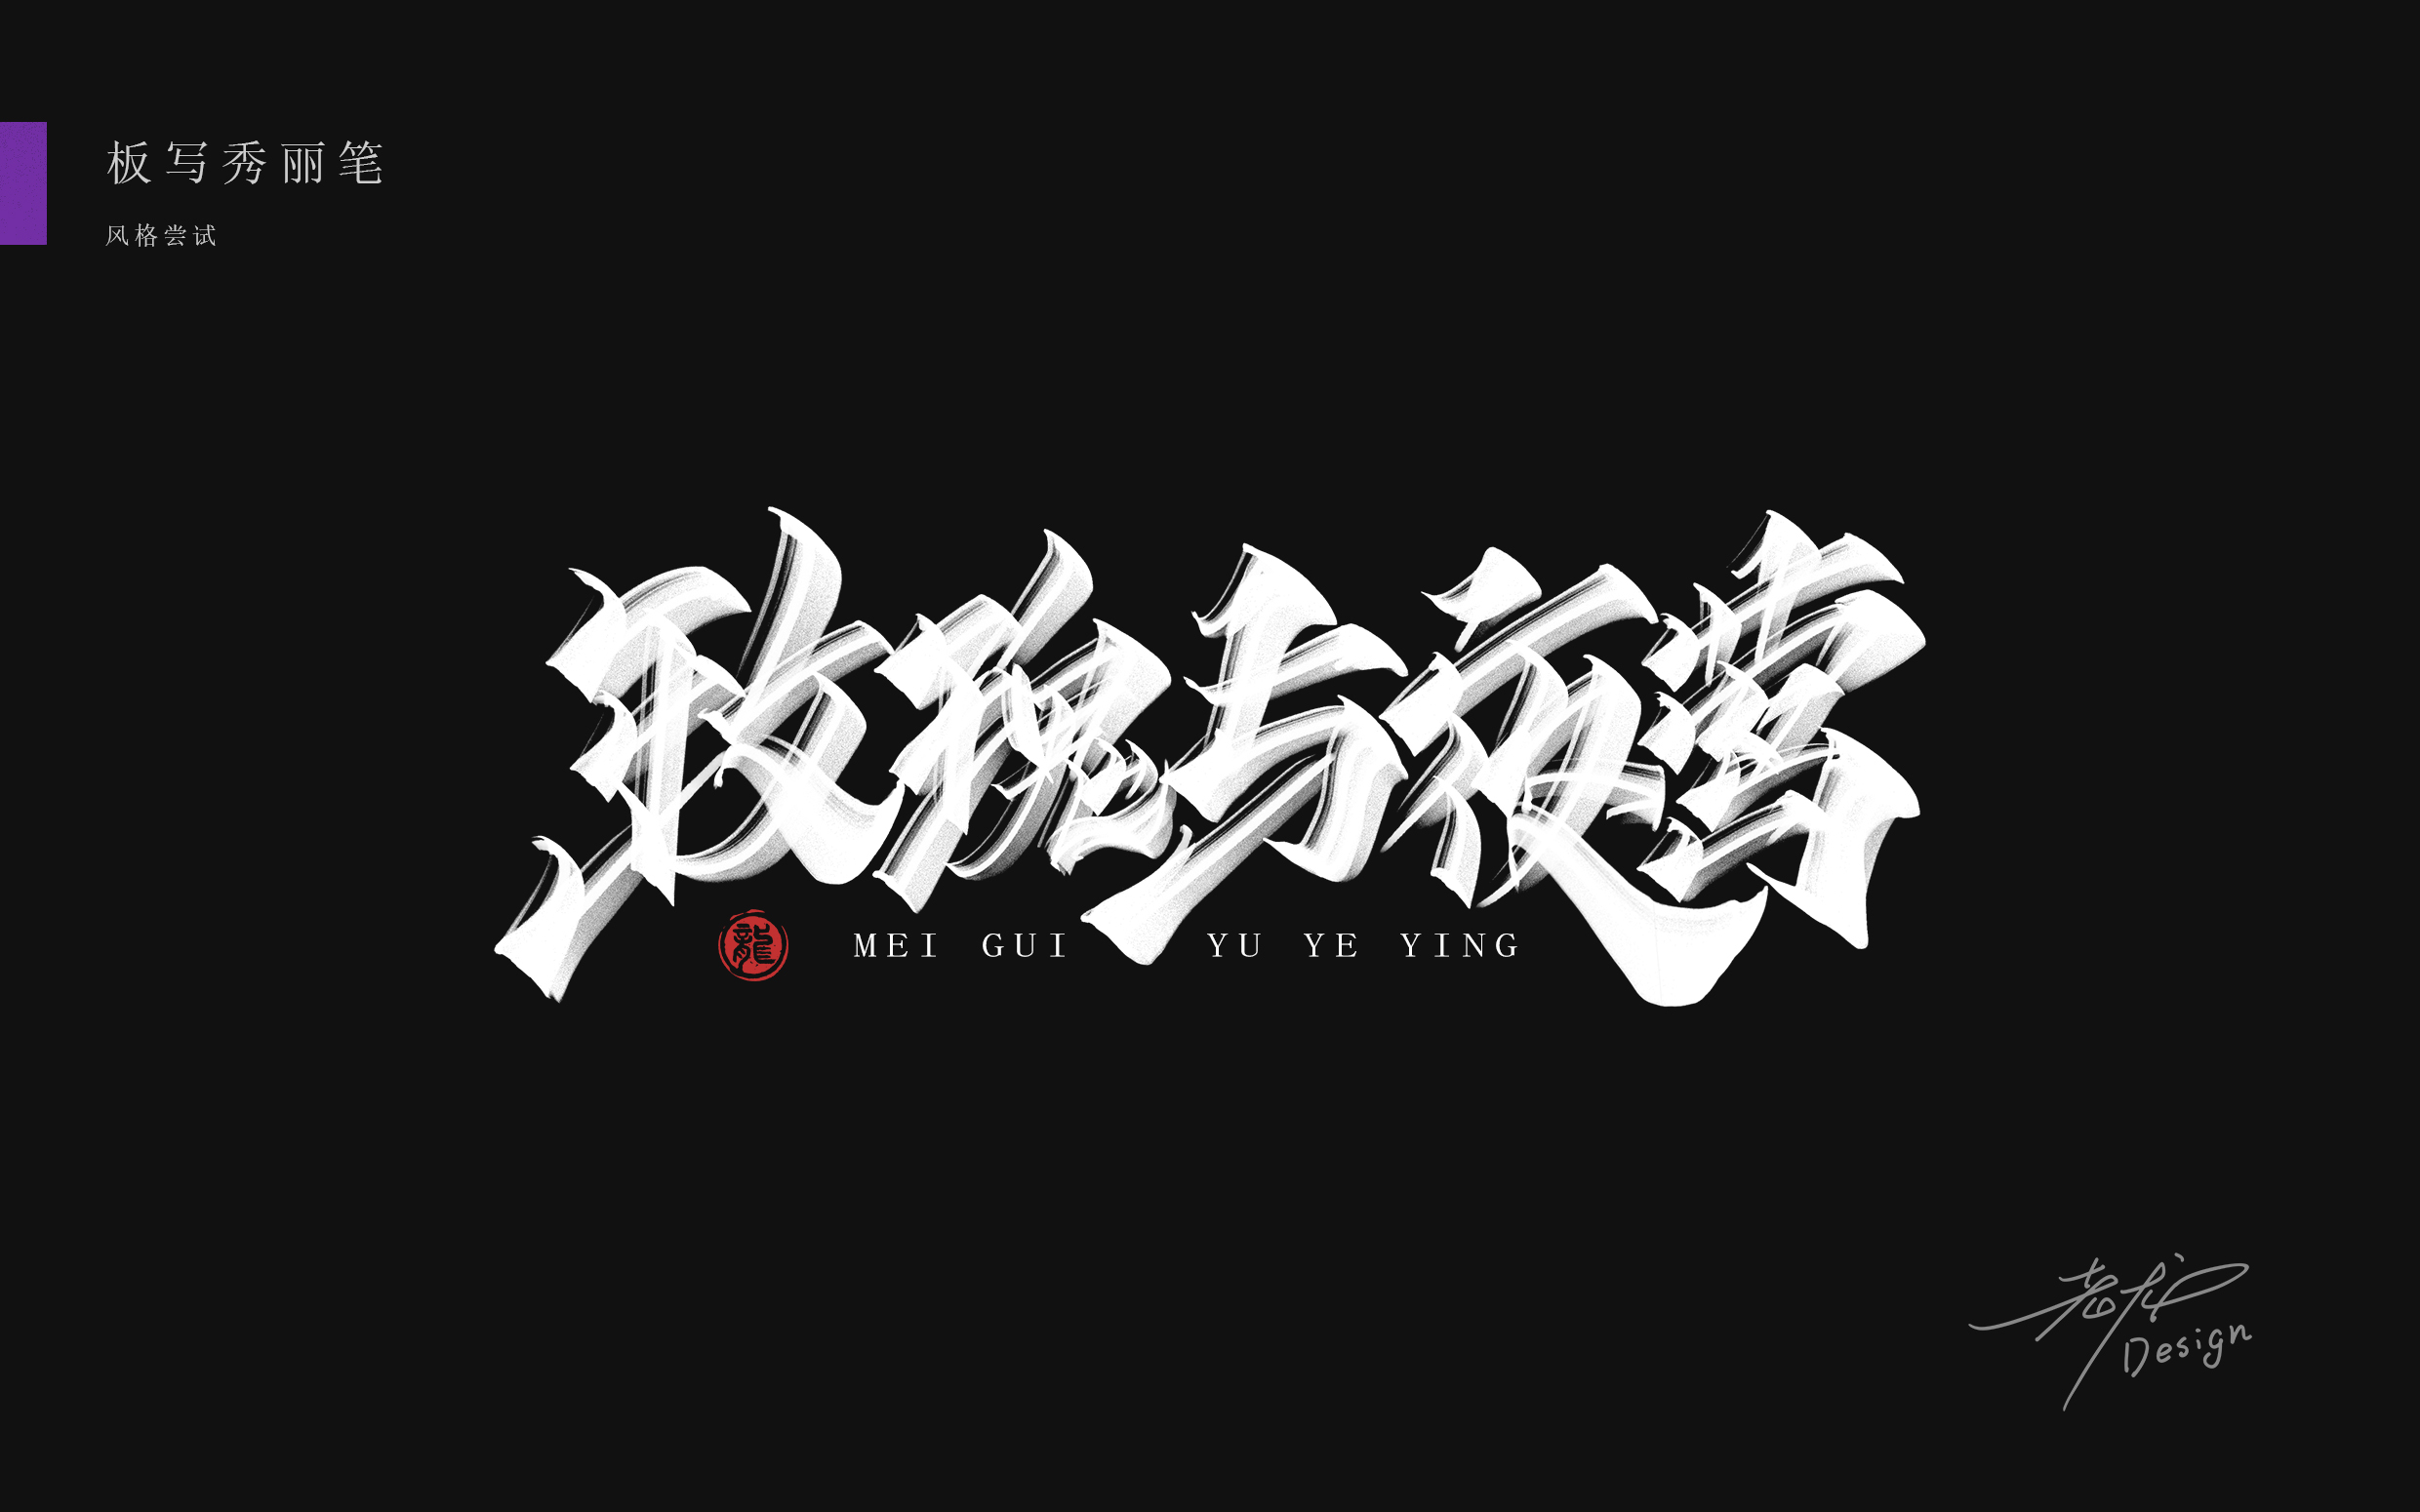 14P Collection of the latest Chinese font design schemes in 2021 #.399